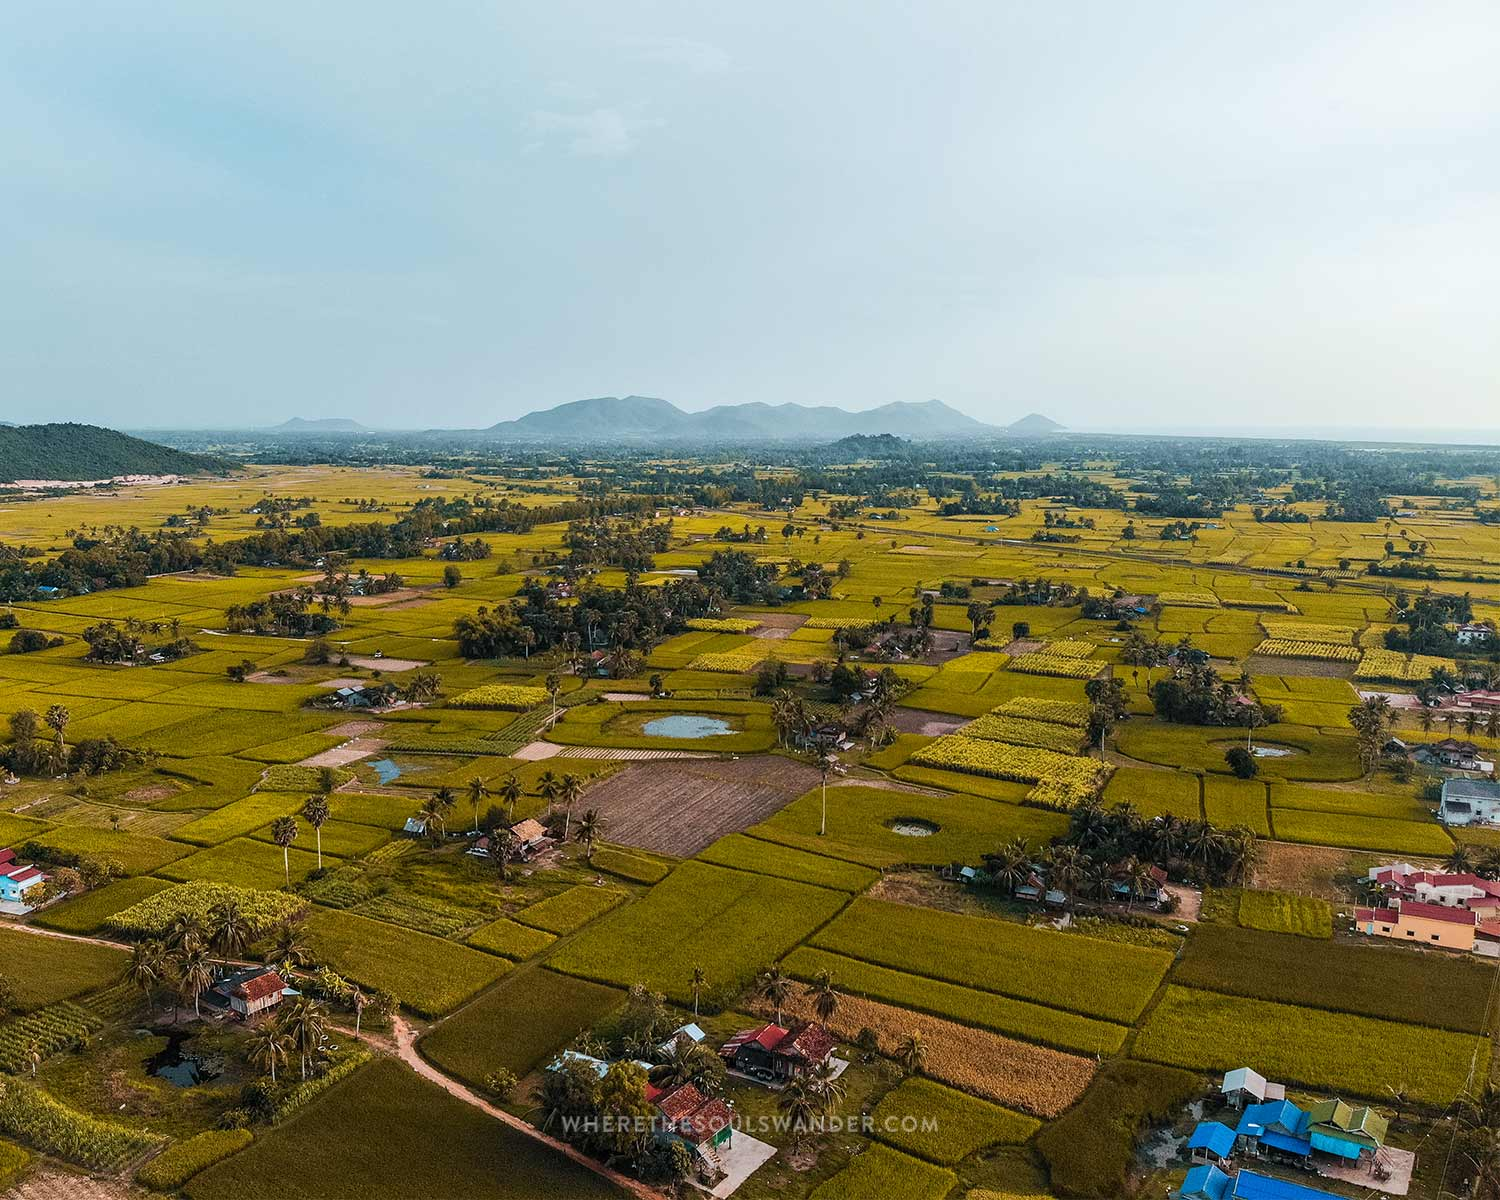 The countryside between Kampot and Kep looks stunning with all their ricefields.